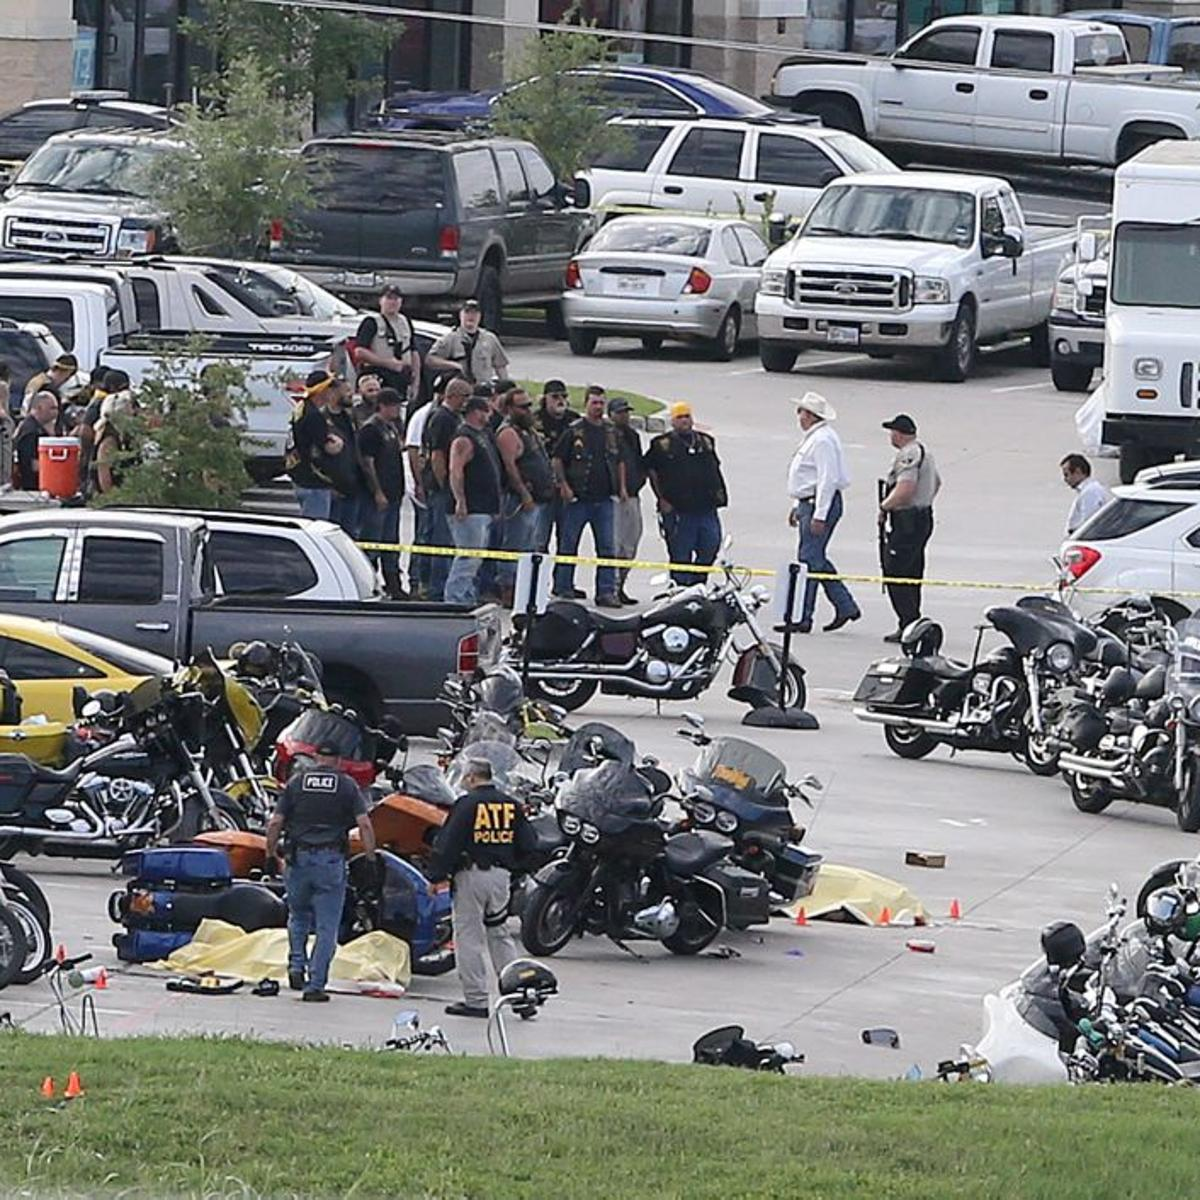 4 bikers killed at Twin Peaks shot by type of gun Waco police use